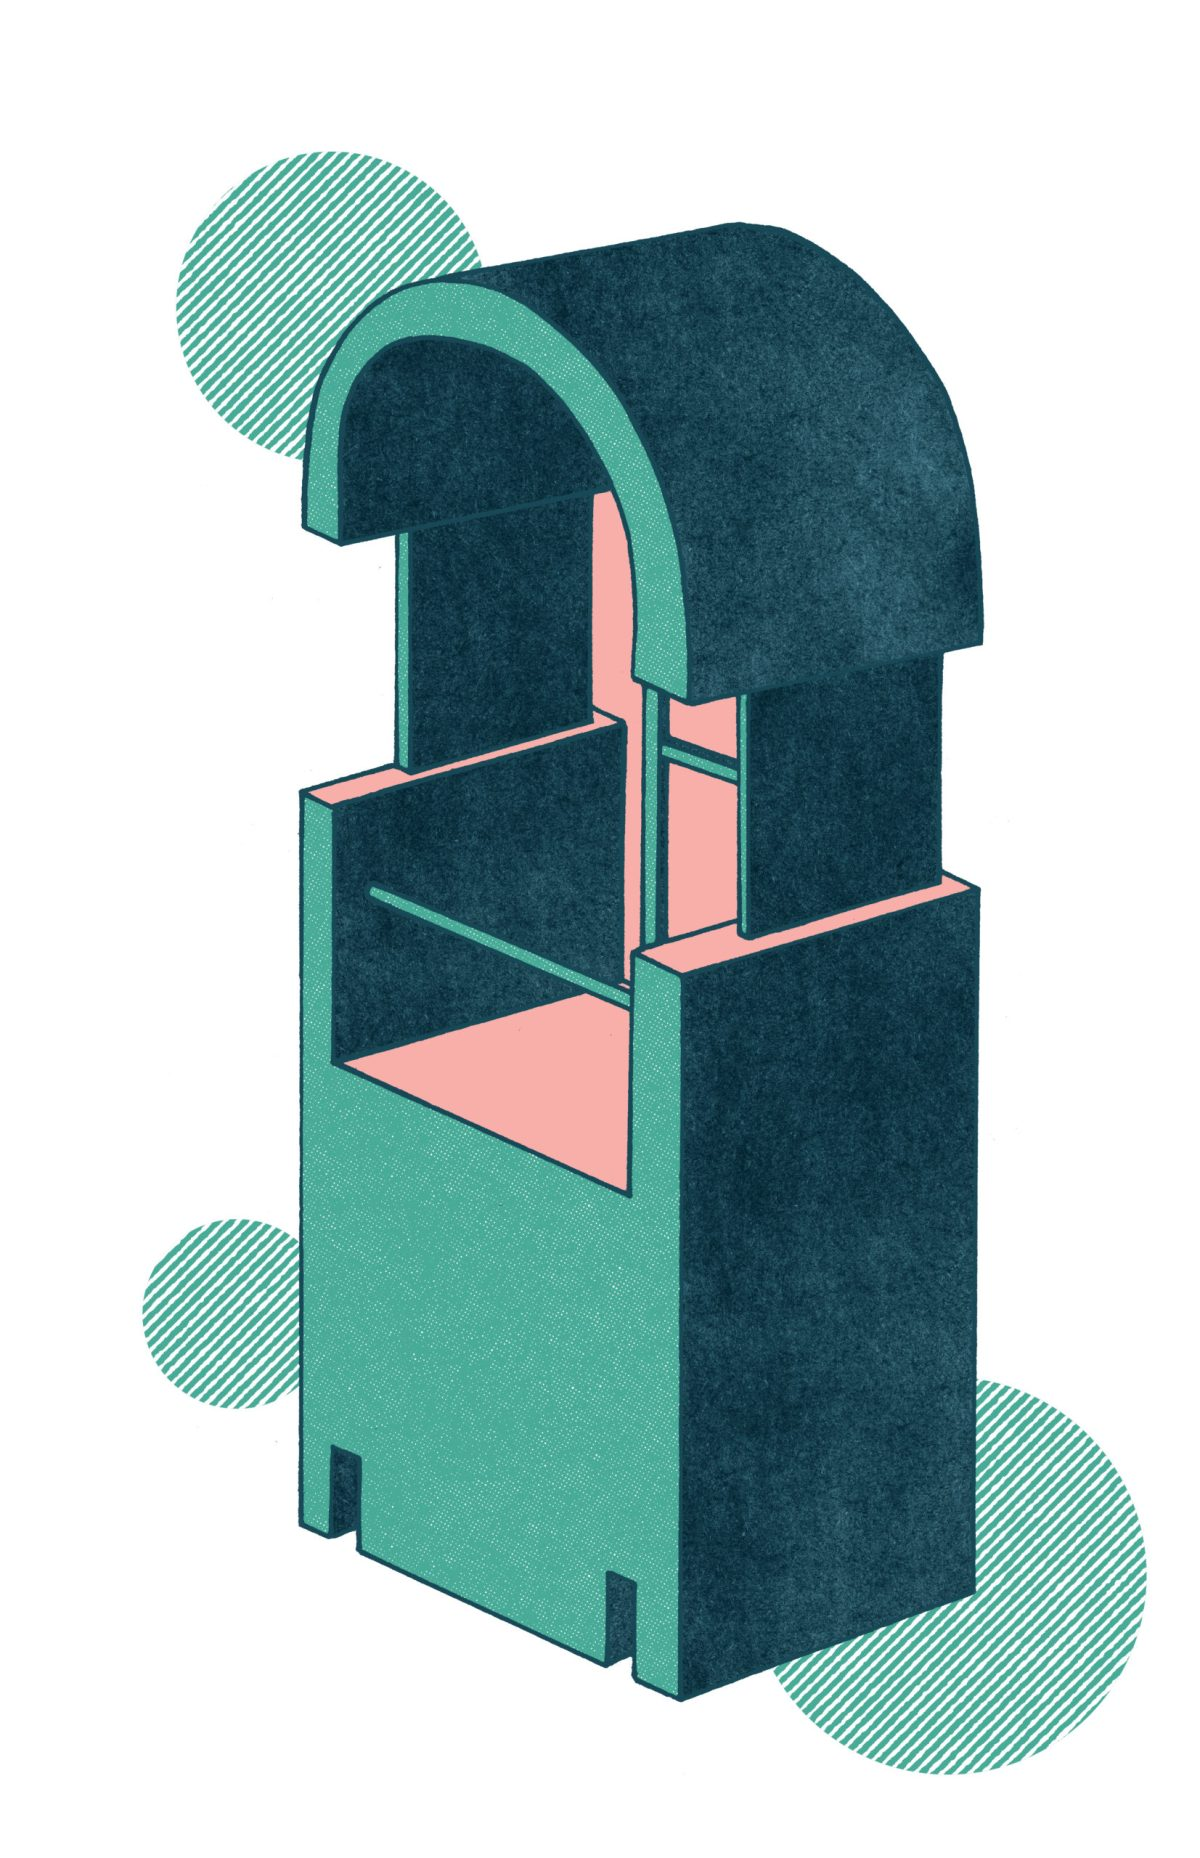 Illustration by Saman Sarheng for Round City